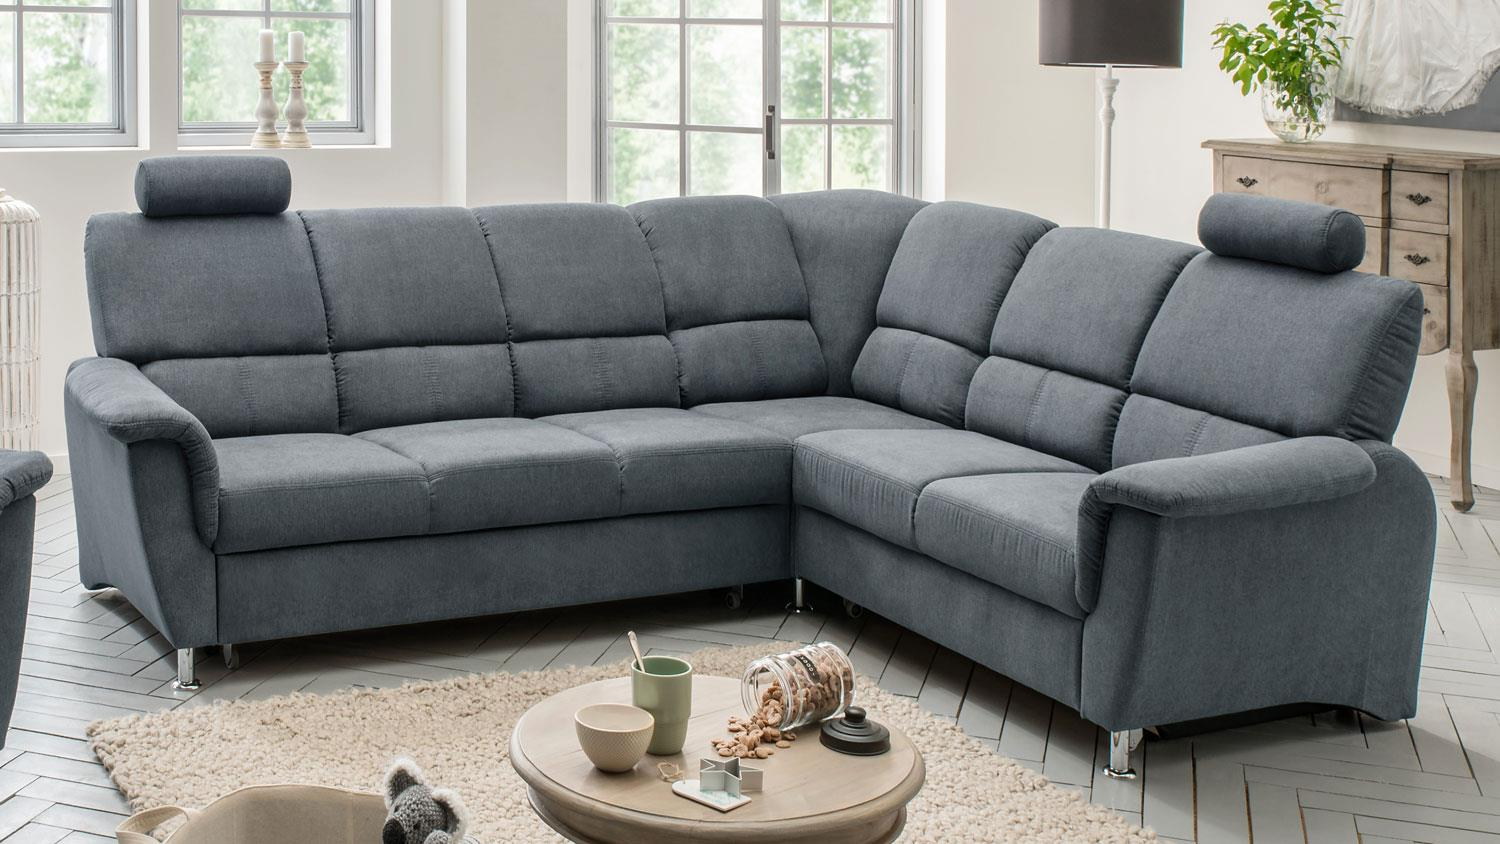 Ecksofa Mit Bettfunktion Ecksofa Pisa Eckgarnitur L-sofa Anthrazit Mit Bettfunktion